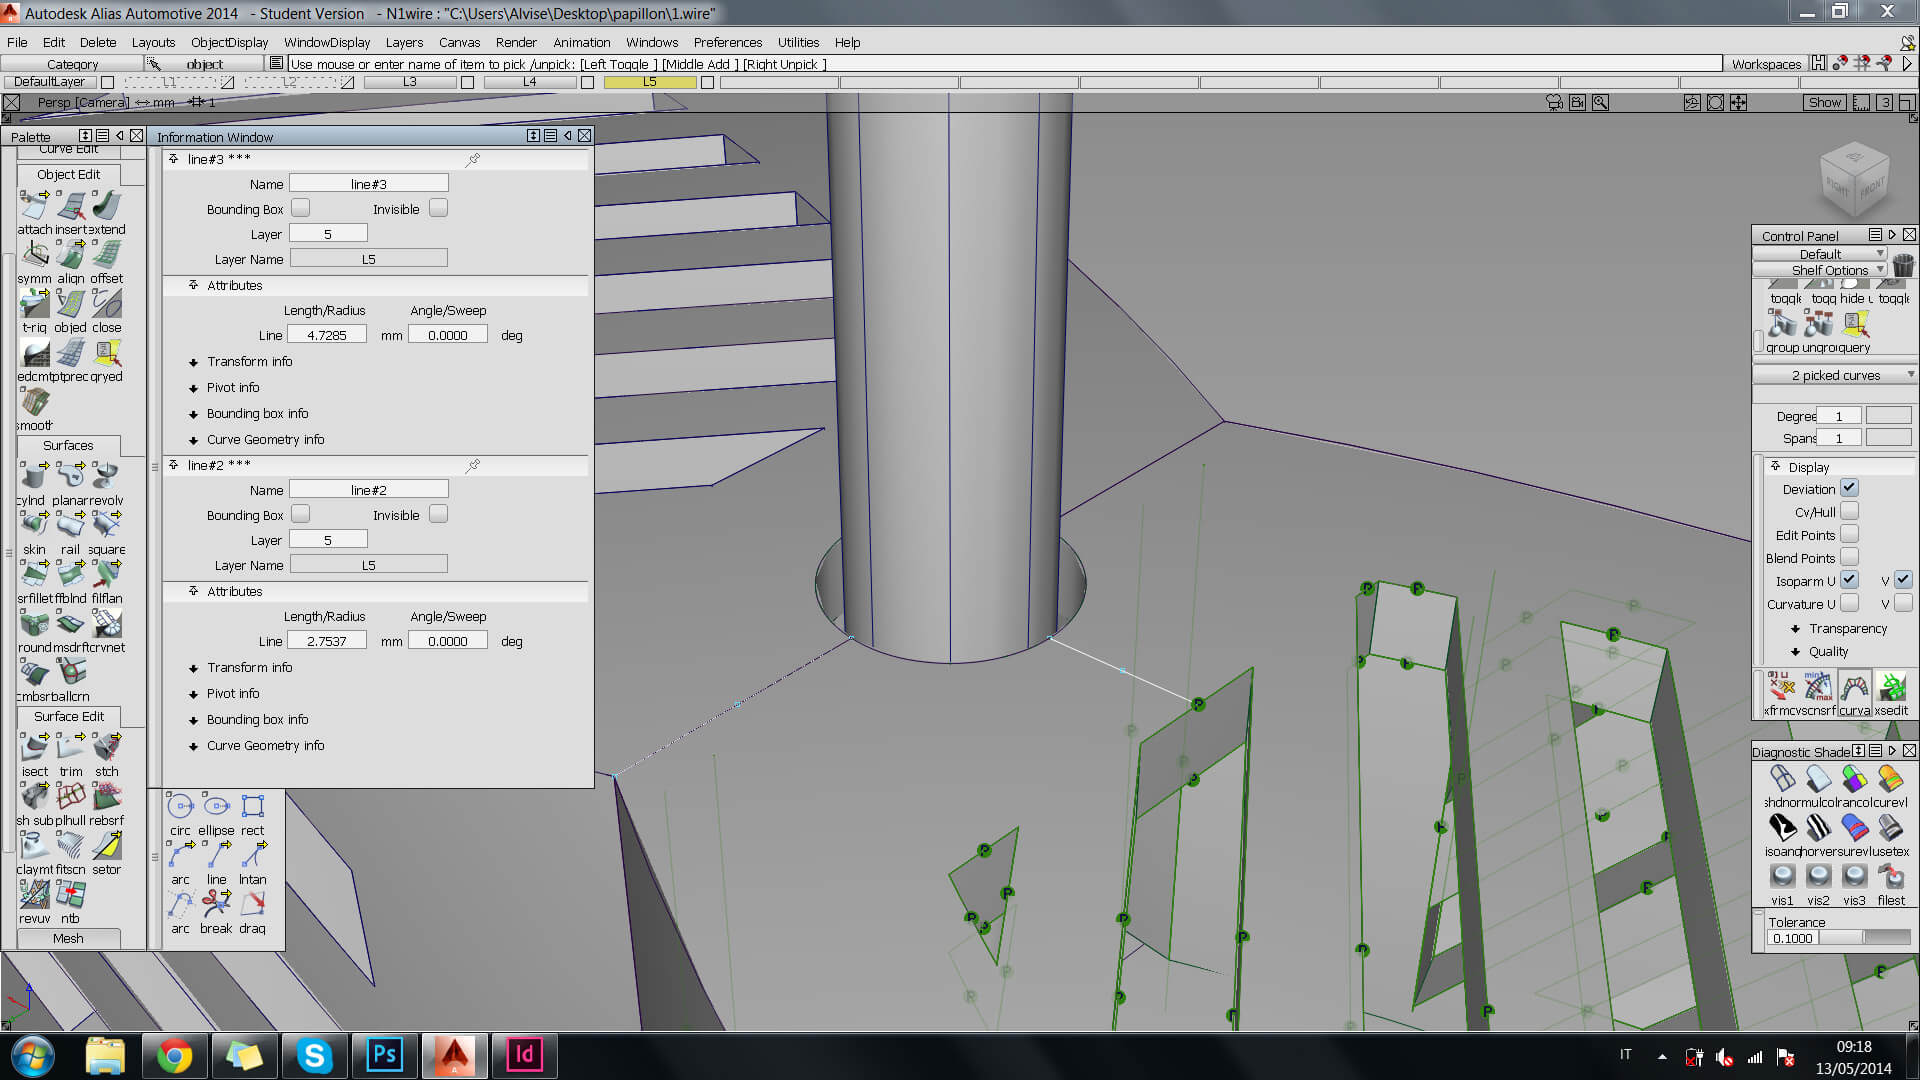 Autodesk Alias Tutorial: 3D Modeling for 3D printing with